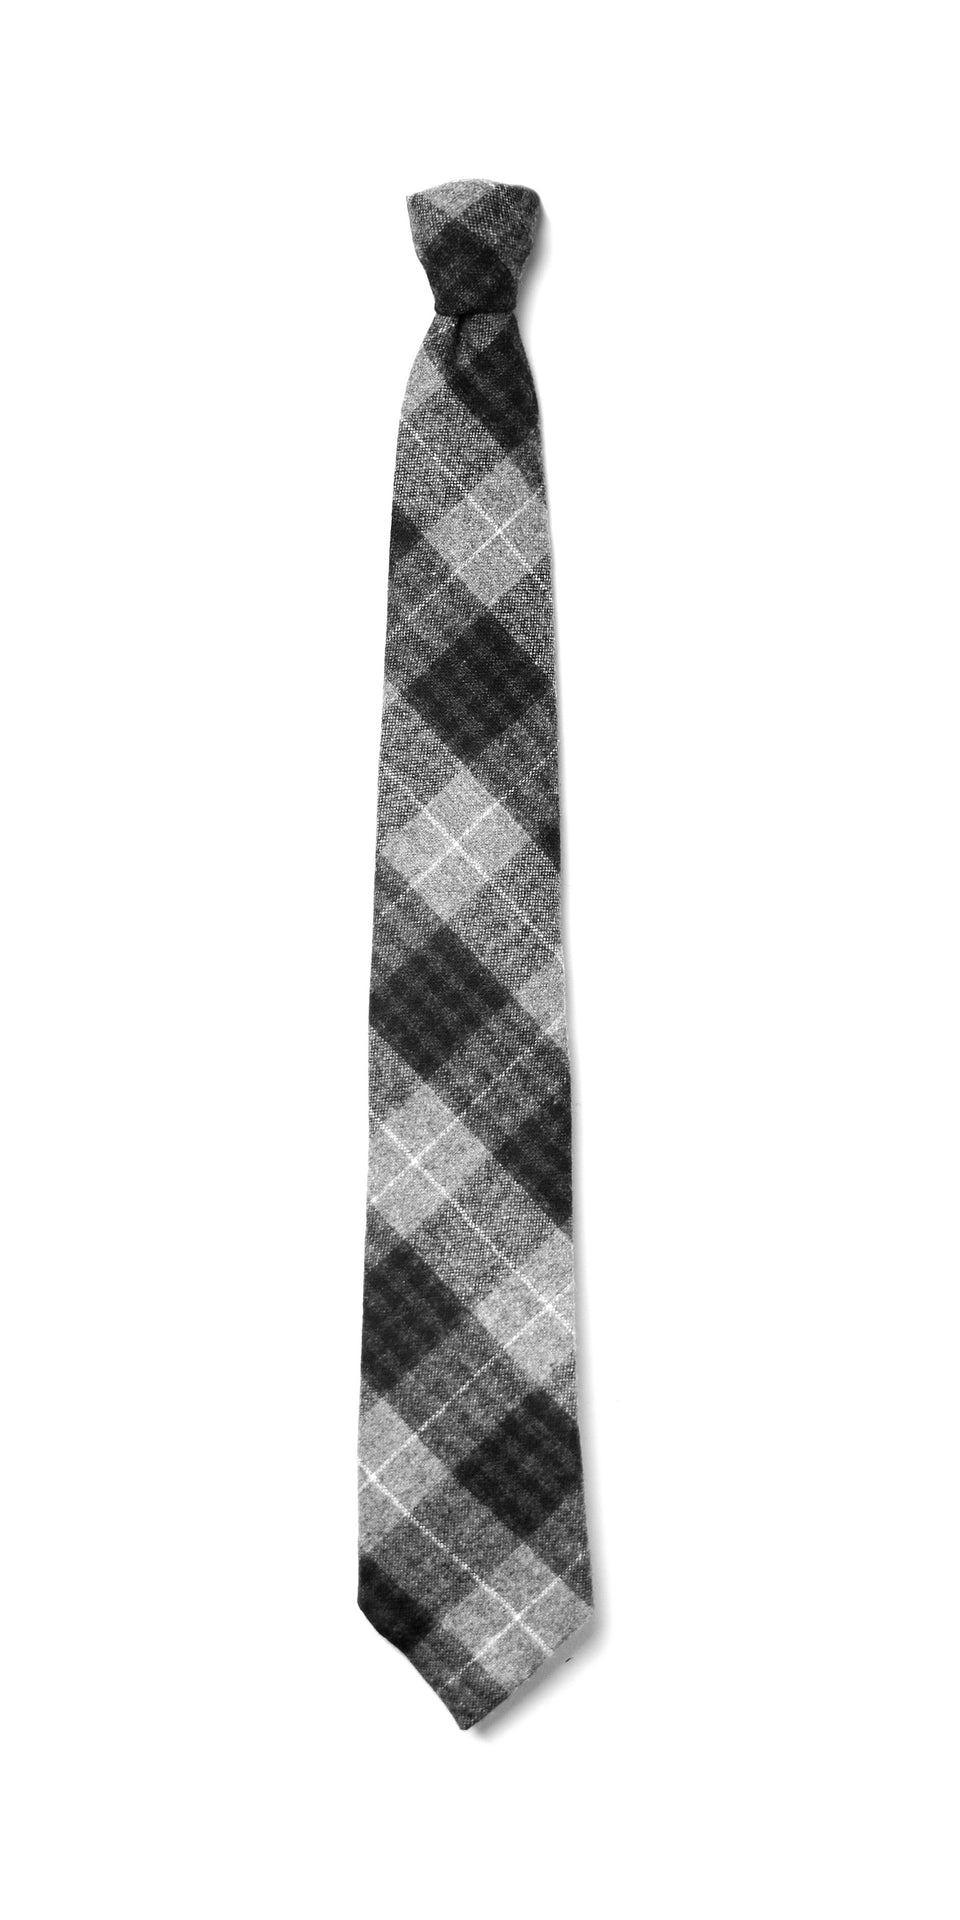 Nightingale tie